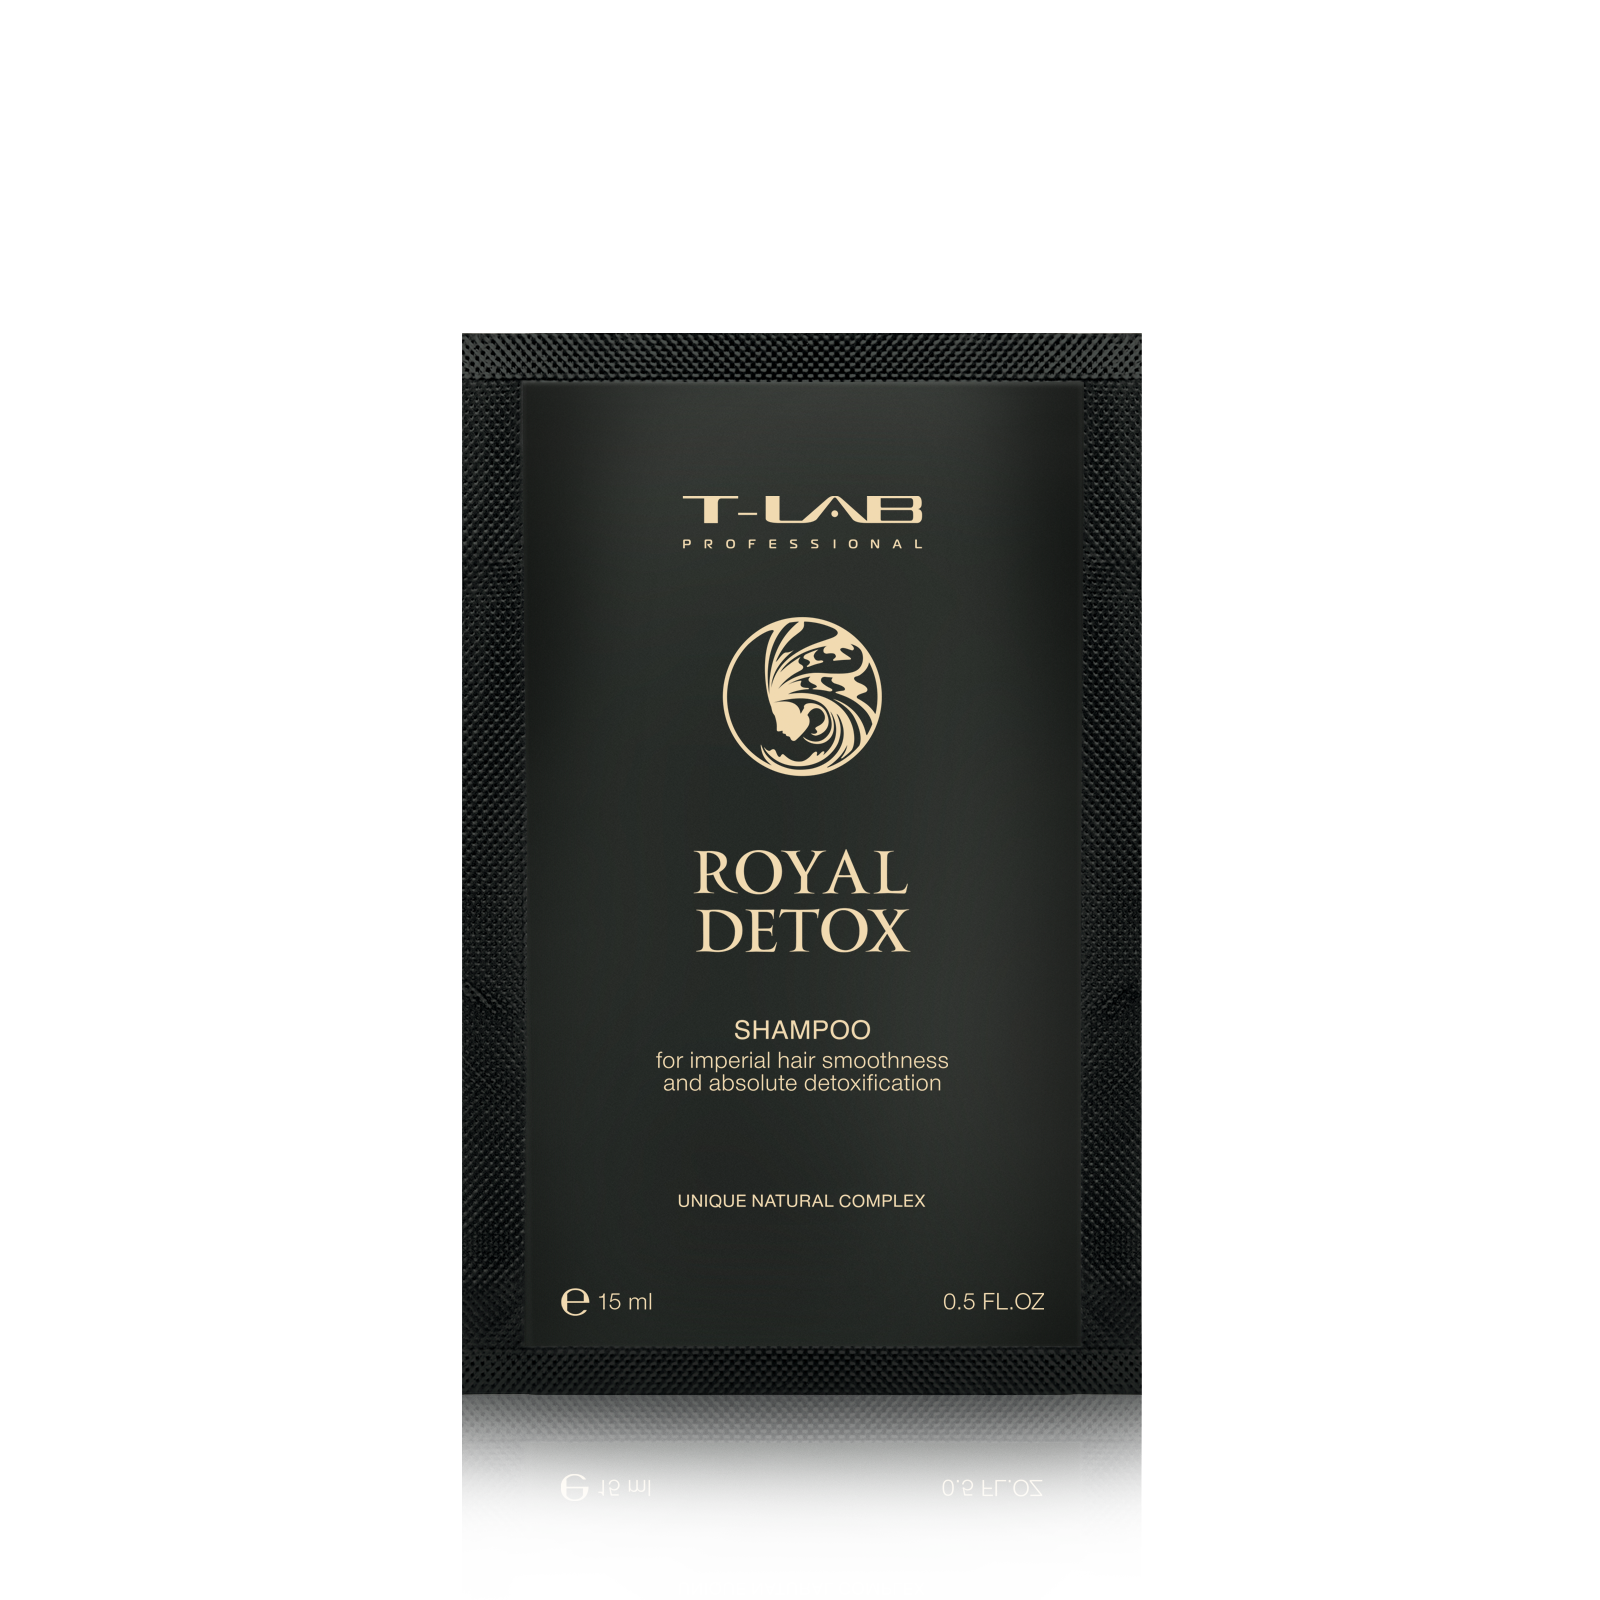 ROYAL DETOX SHAMPOO 15 ml